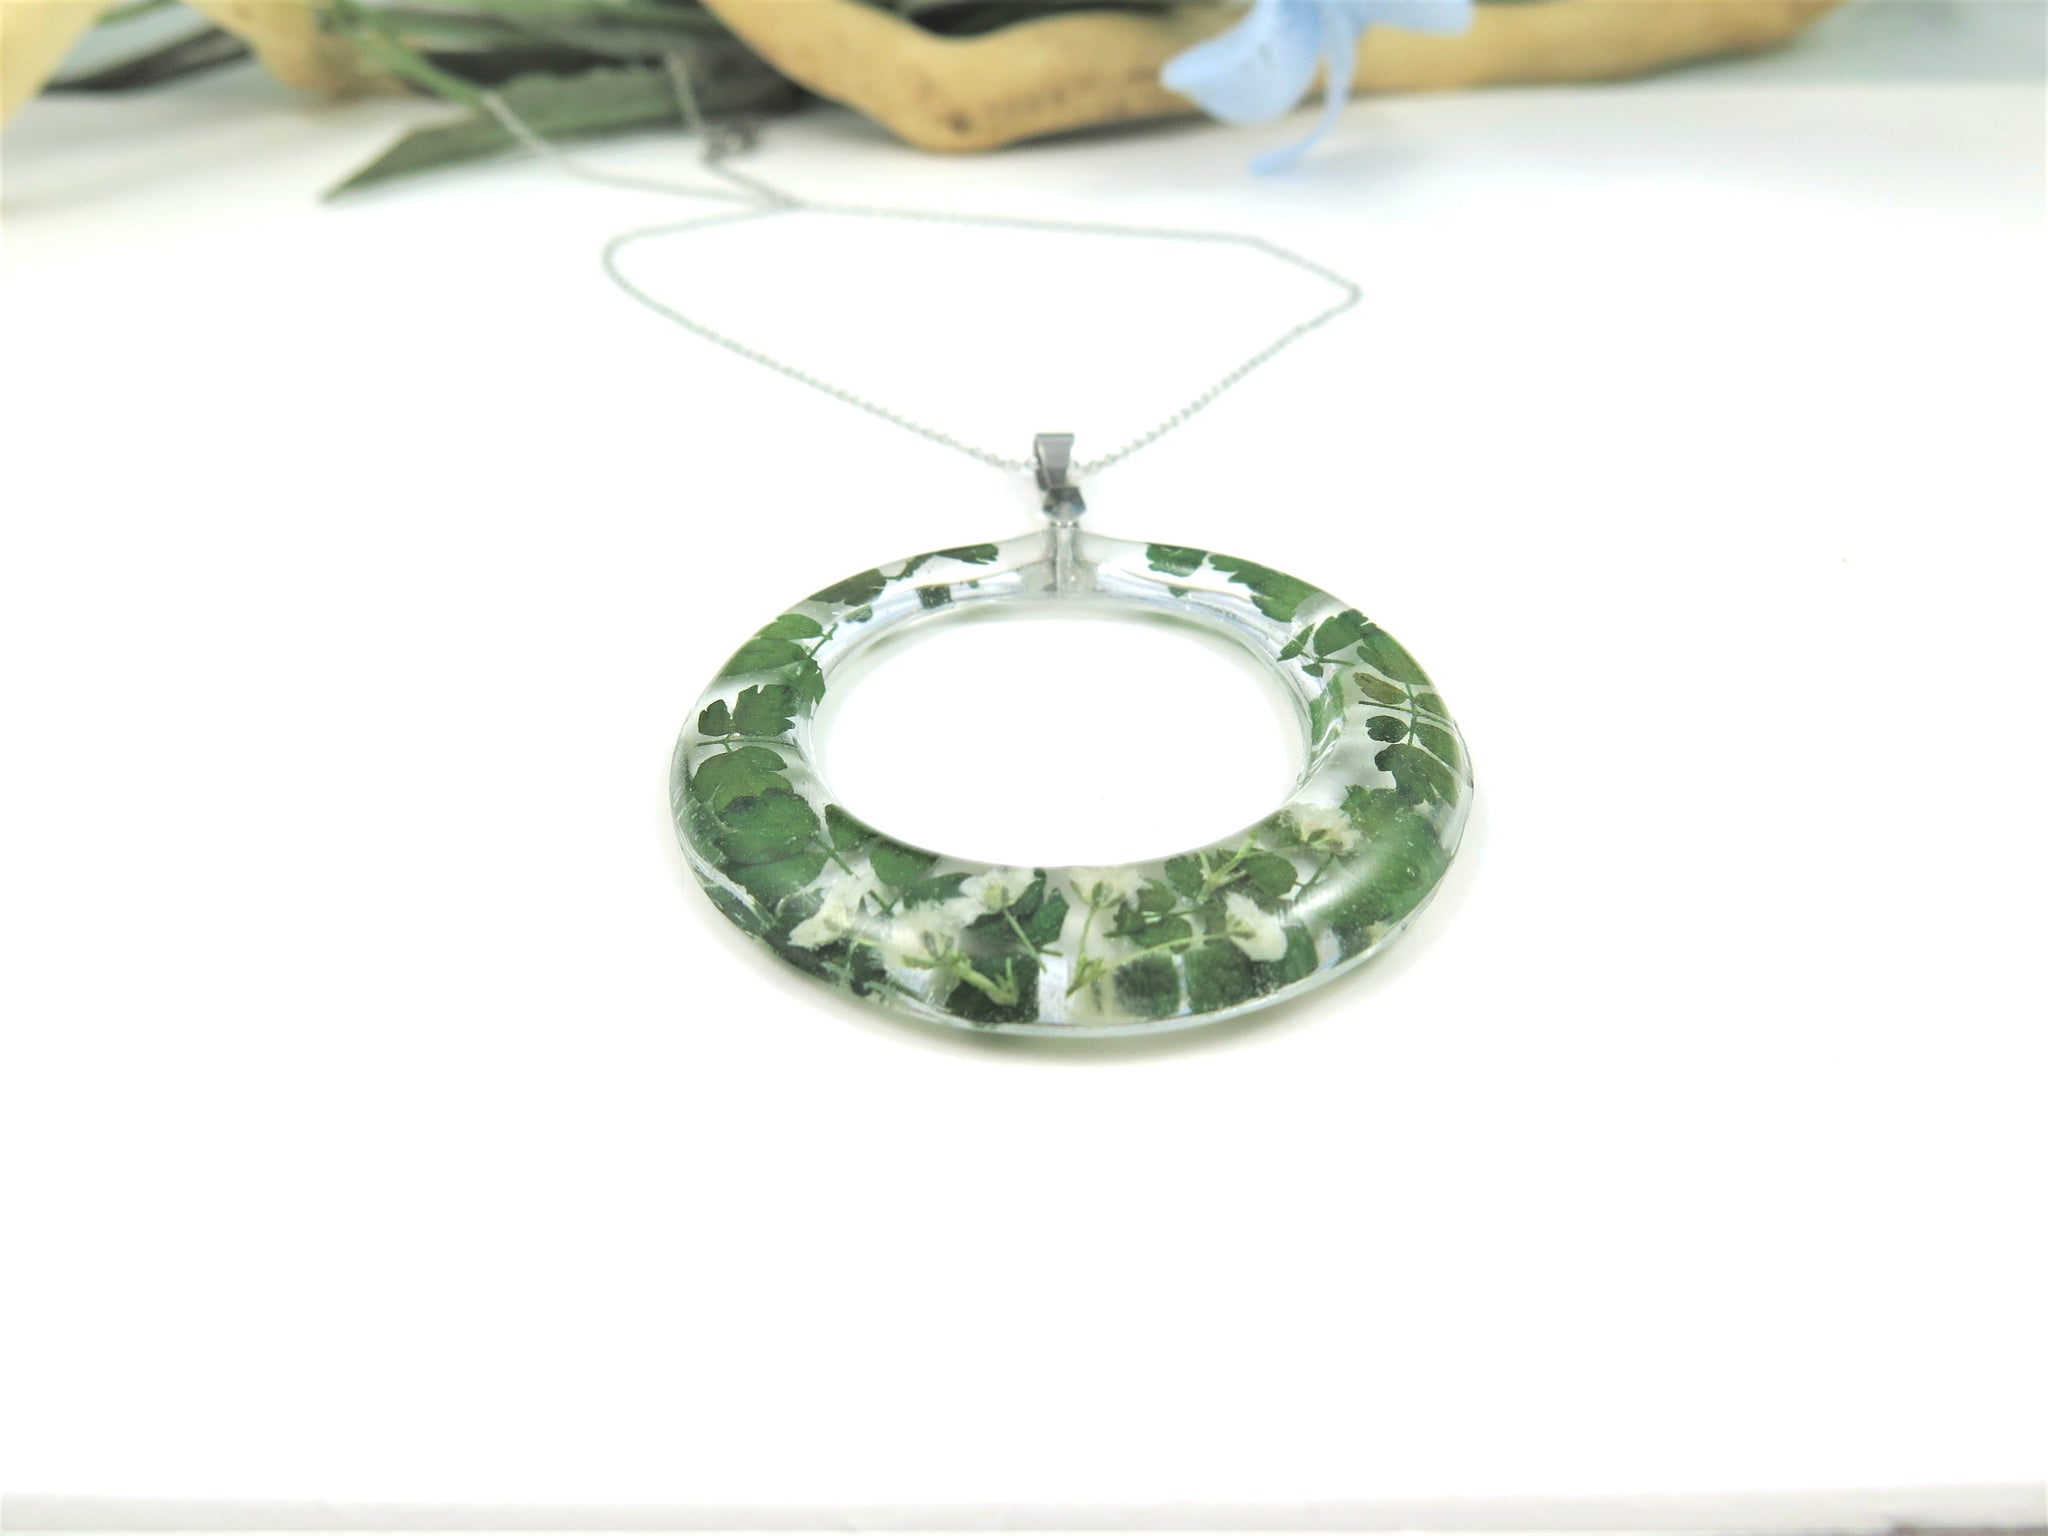 Real Flower Resin Necklace, Pressed Flower necklace, Fern and babys breath flowers